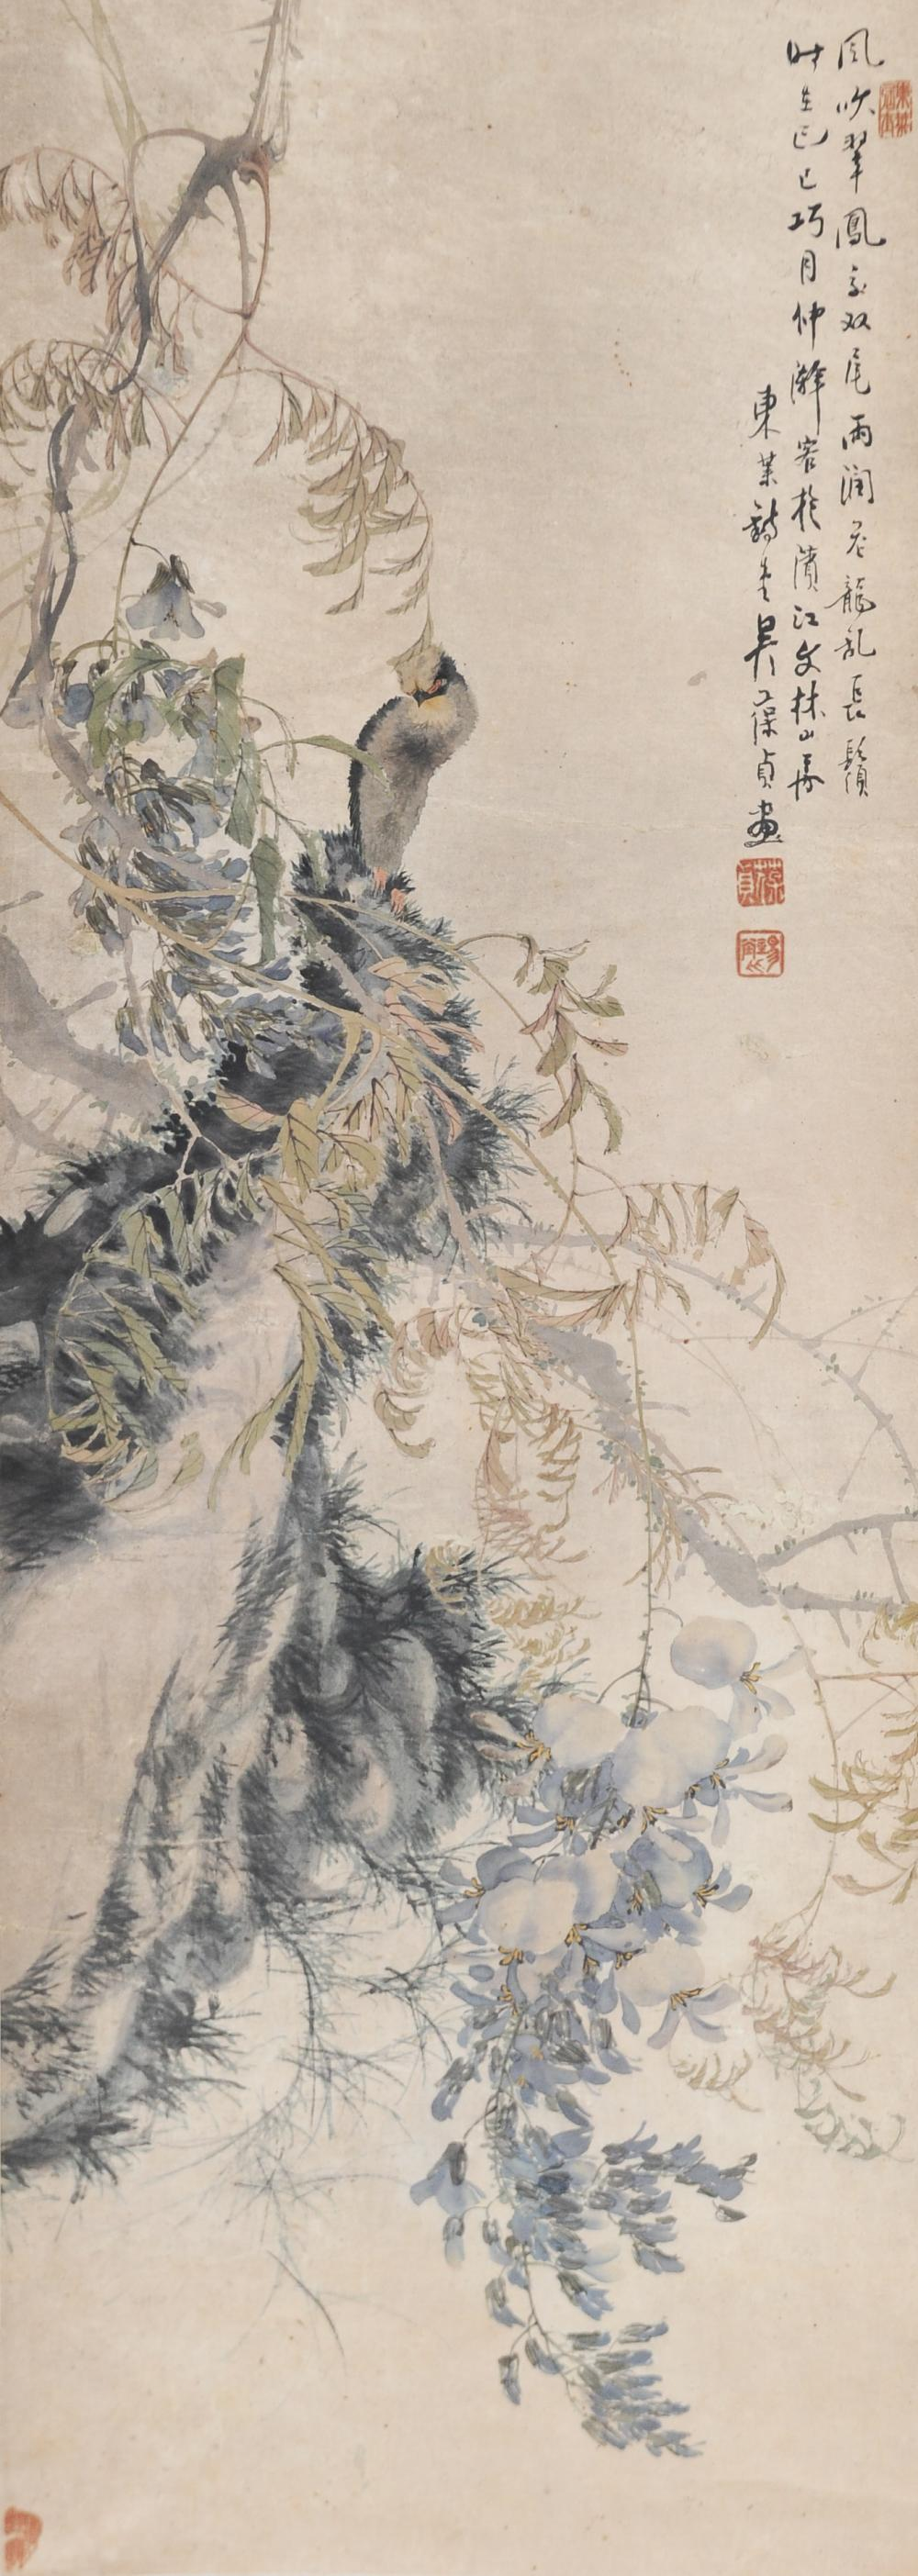 CHINESE PAINTING OF FLOWERS & BIRDS BY WU BAOZHENG